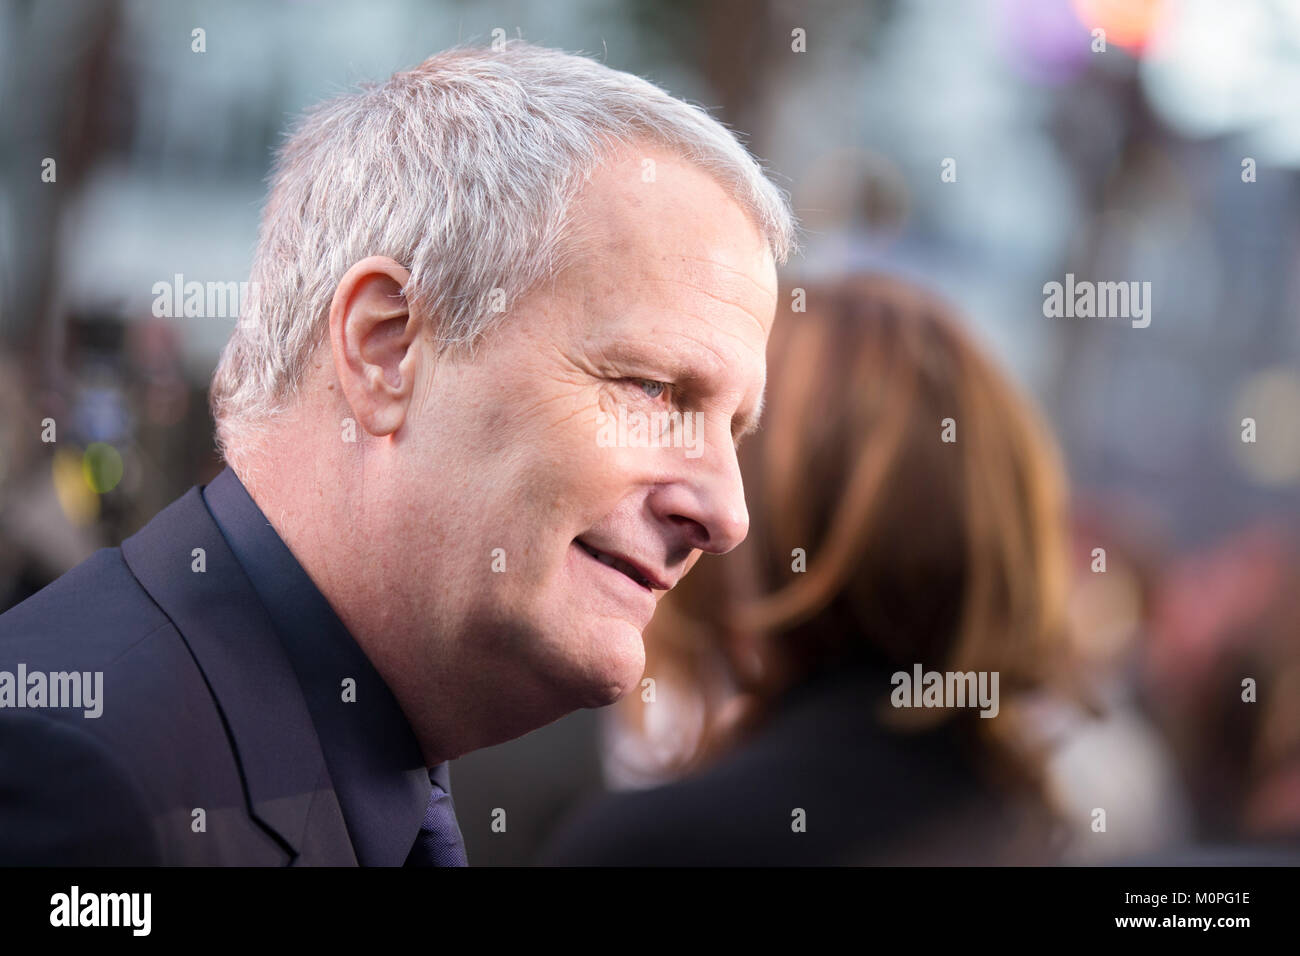 London, UK,  24 September 2015,Jeff Daniels, European Premiere of 'The Martian' at the Odeon Leicester Square. - Stock Image